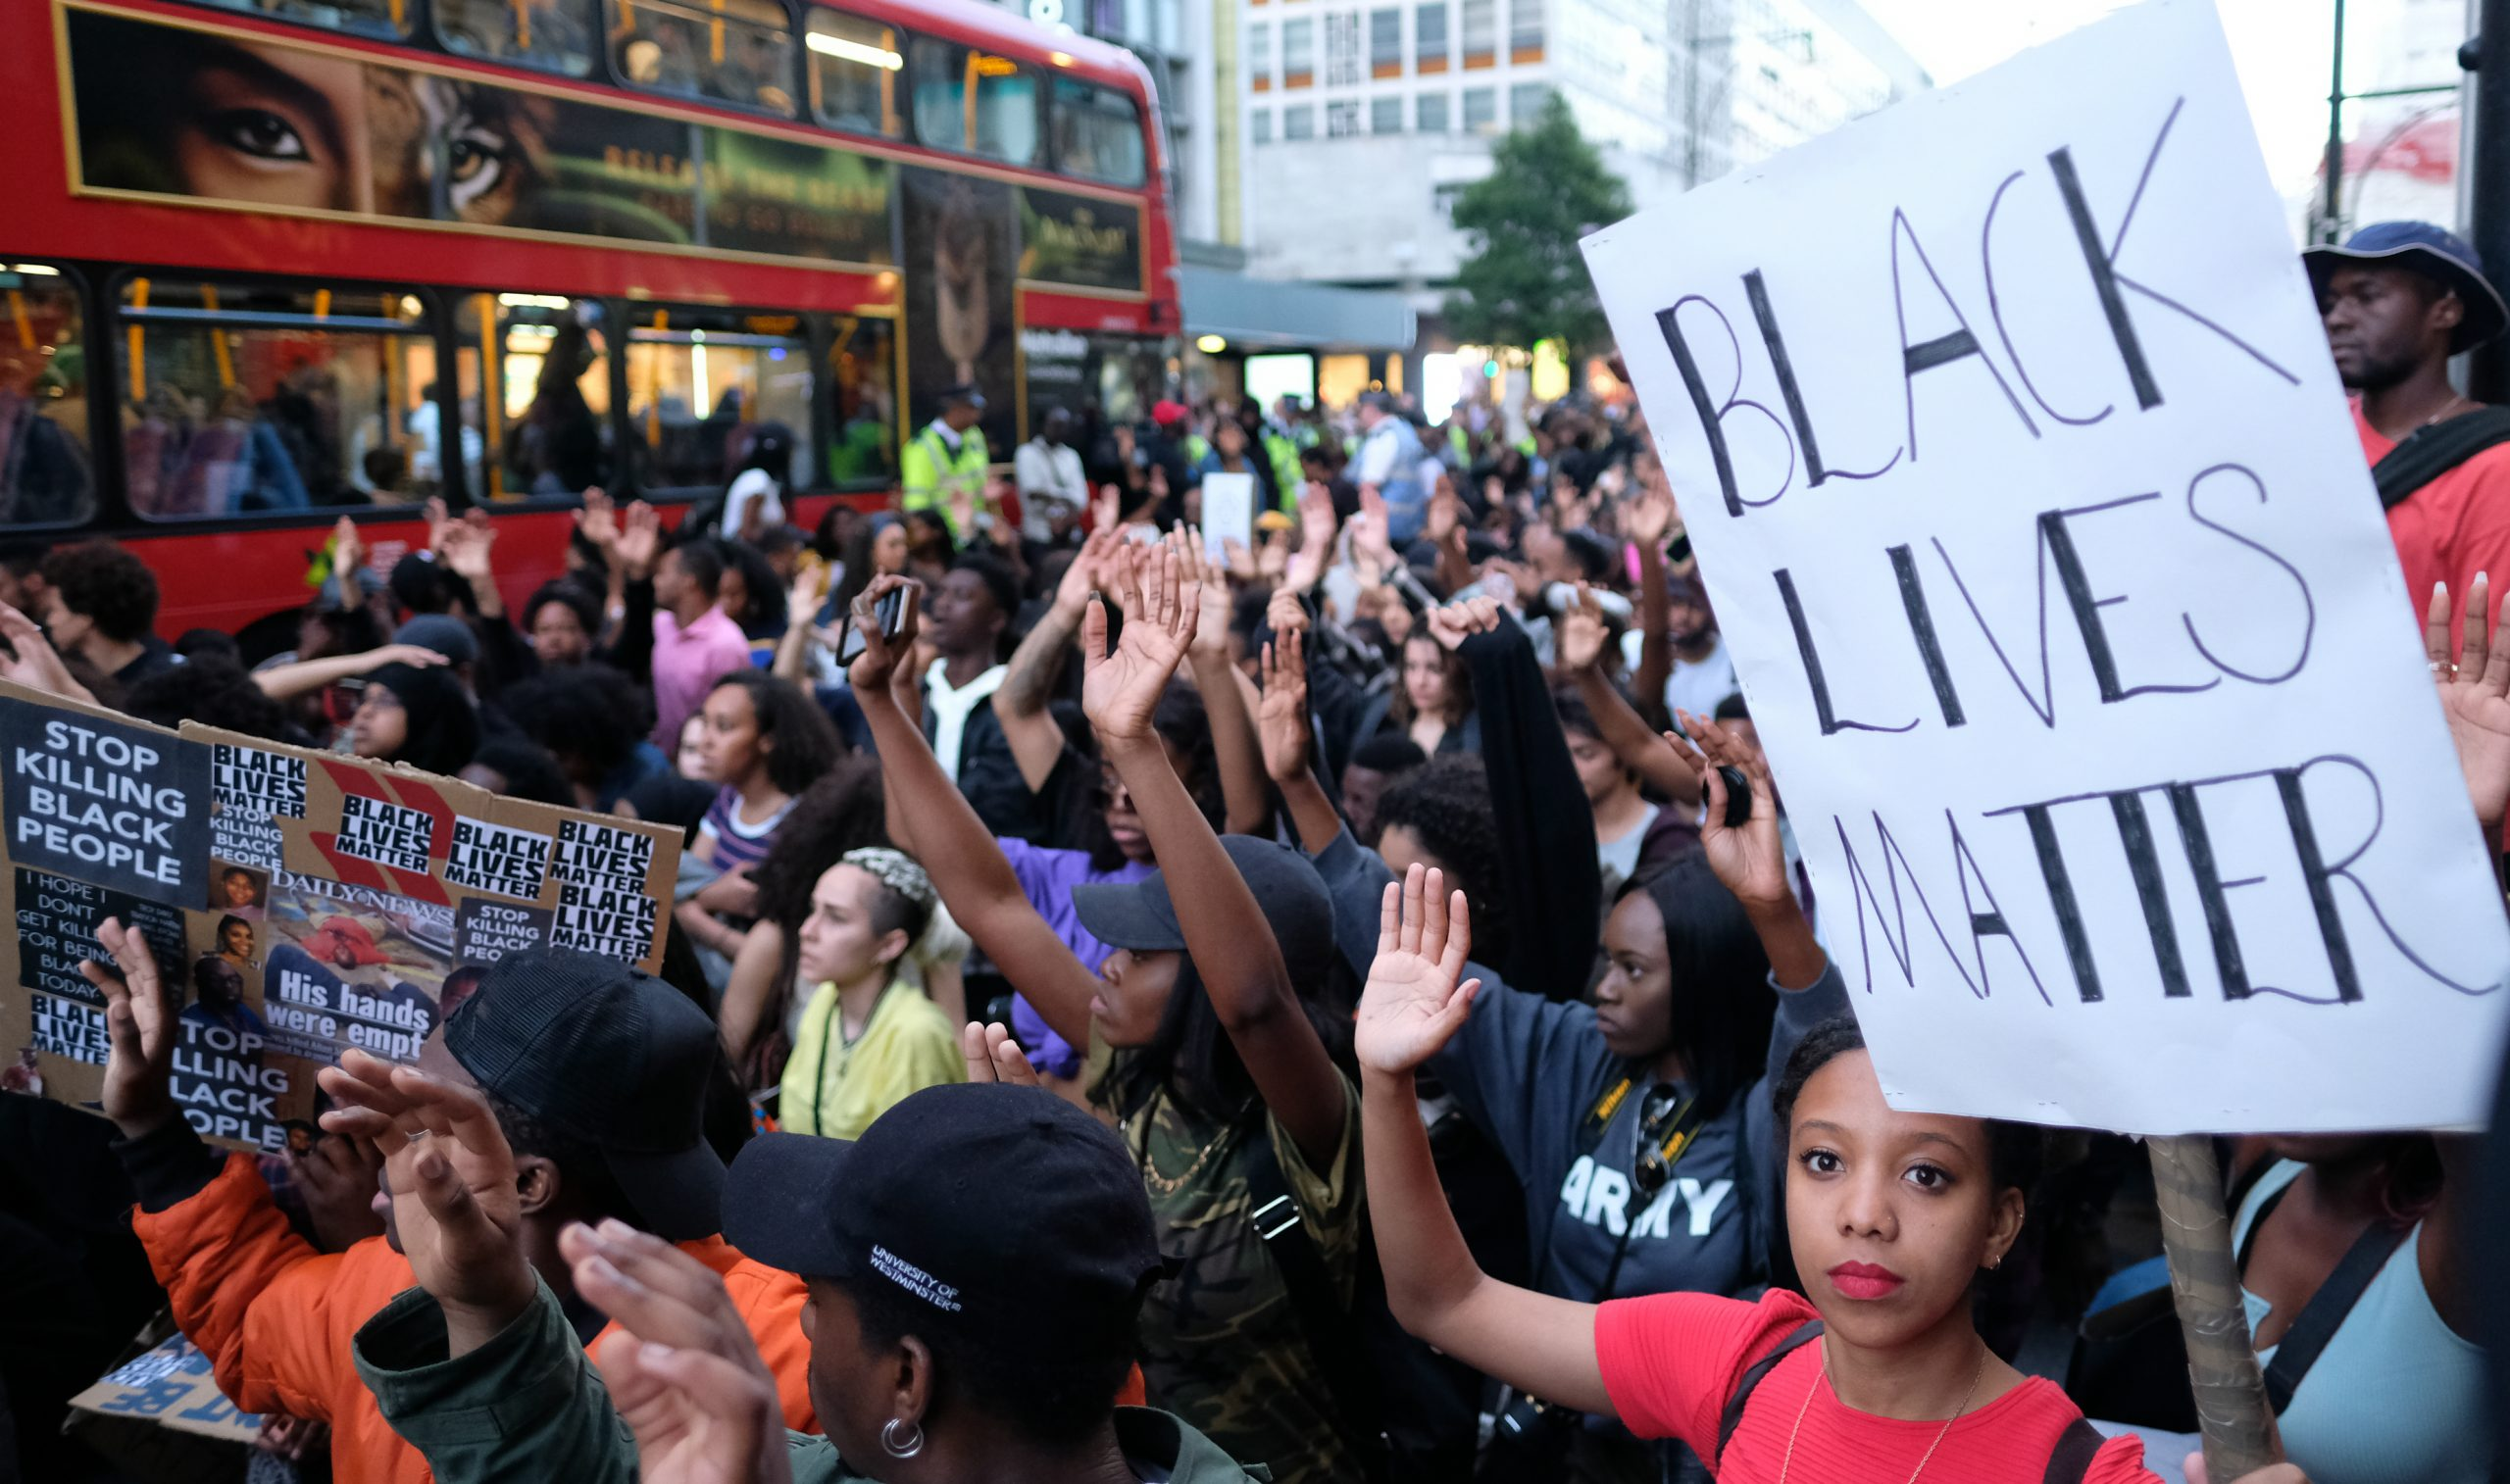 Black Lives Matter protesters in London's Oxford Street kneel and raise their hands – 8 July 2016